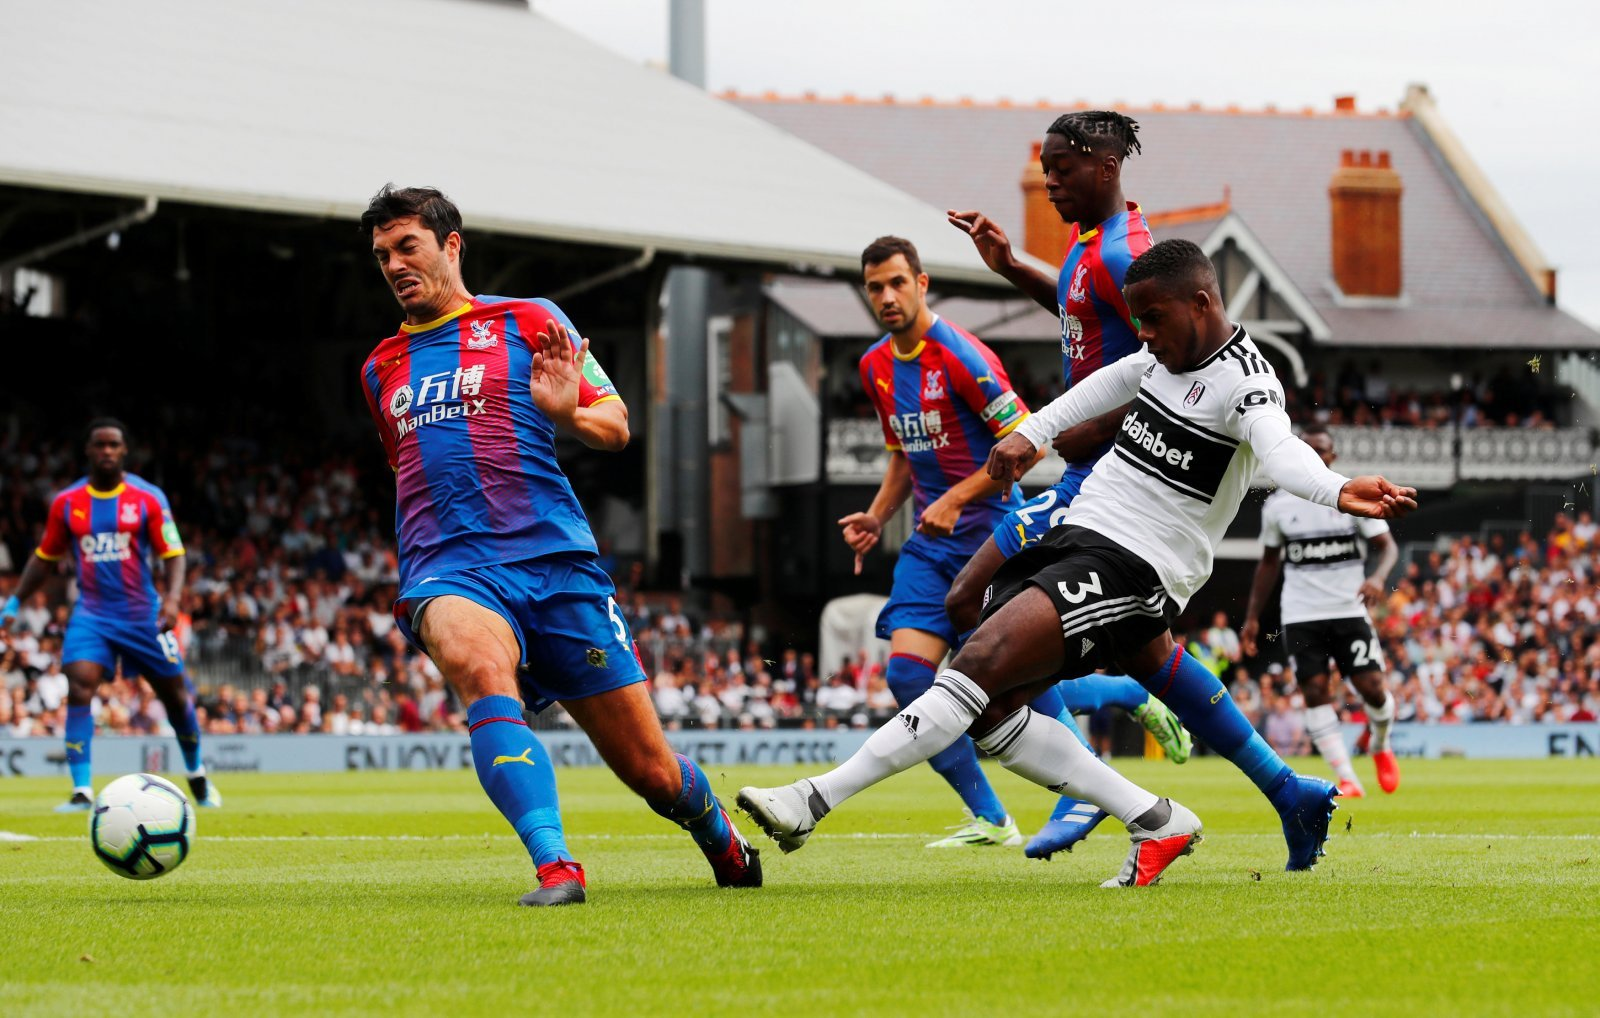 James Tomkins was Crystal Palace's unsung hero in victory at Fulham